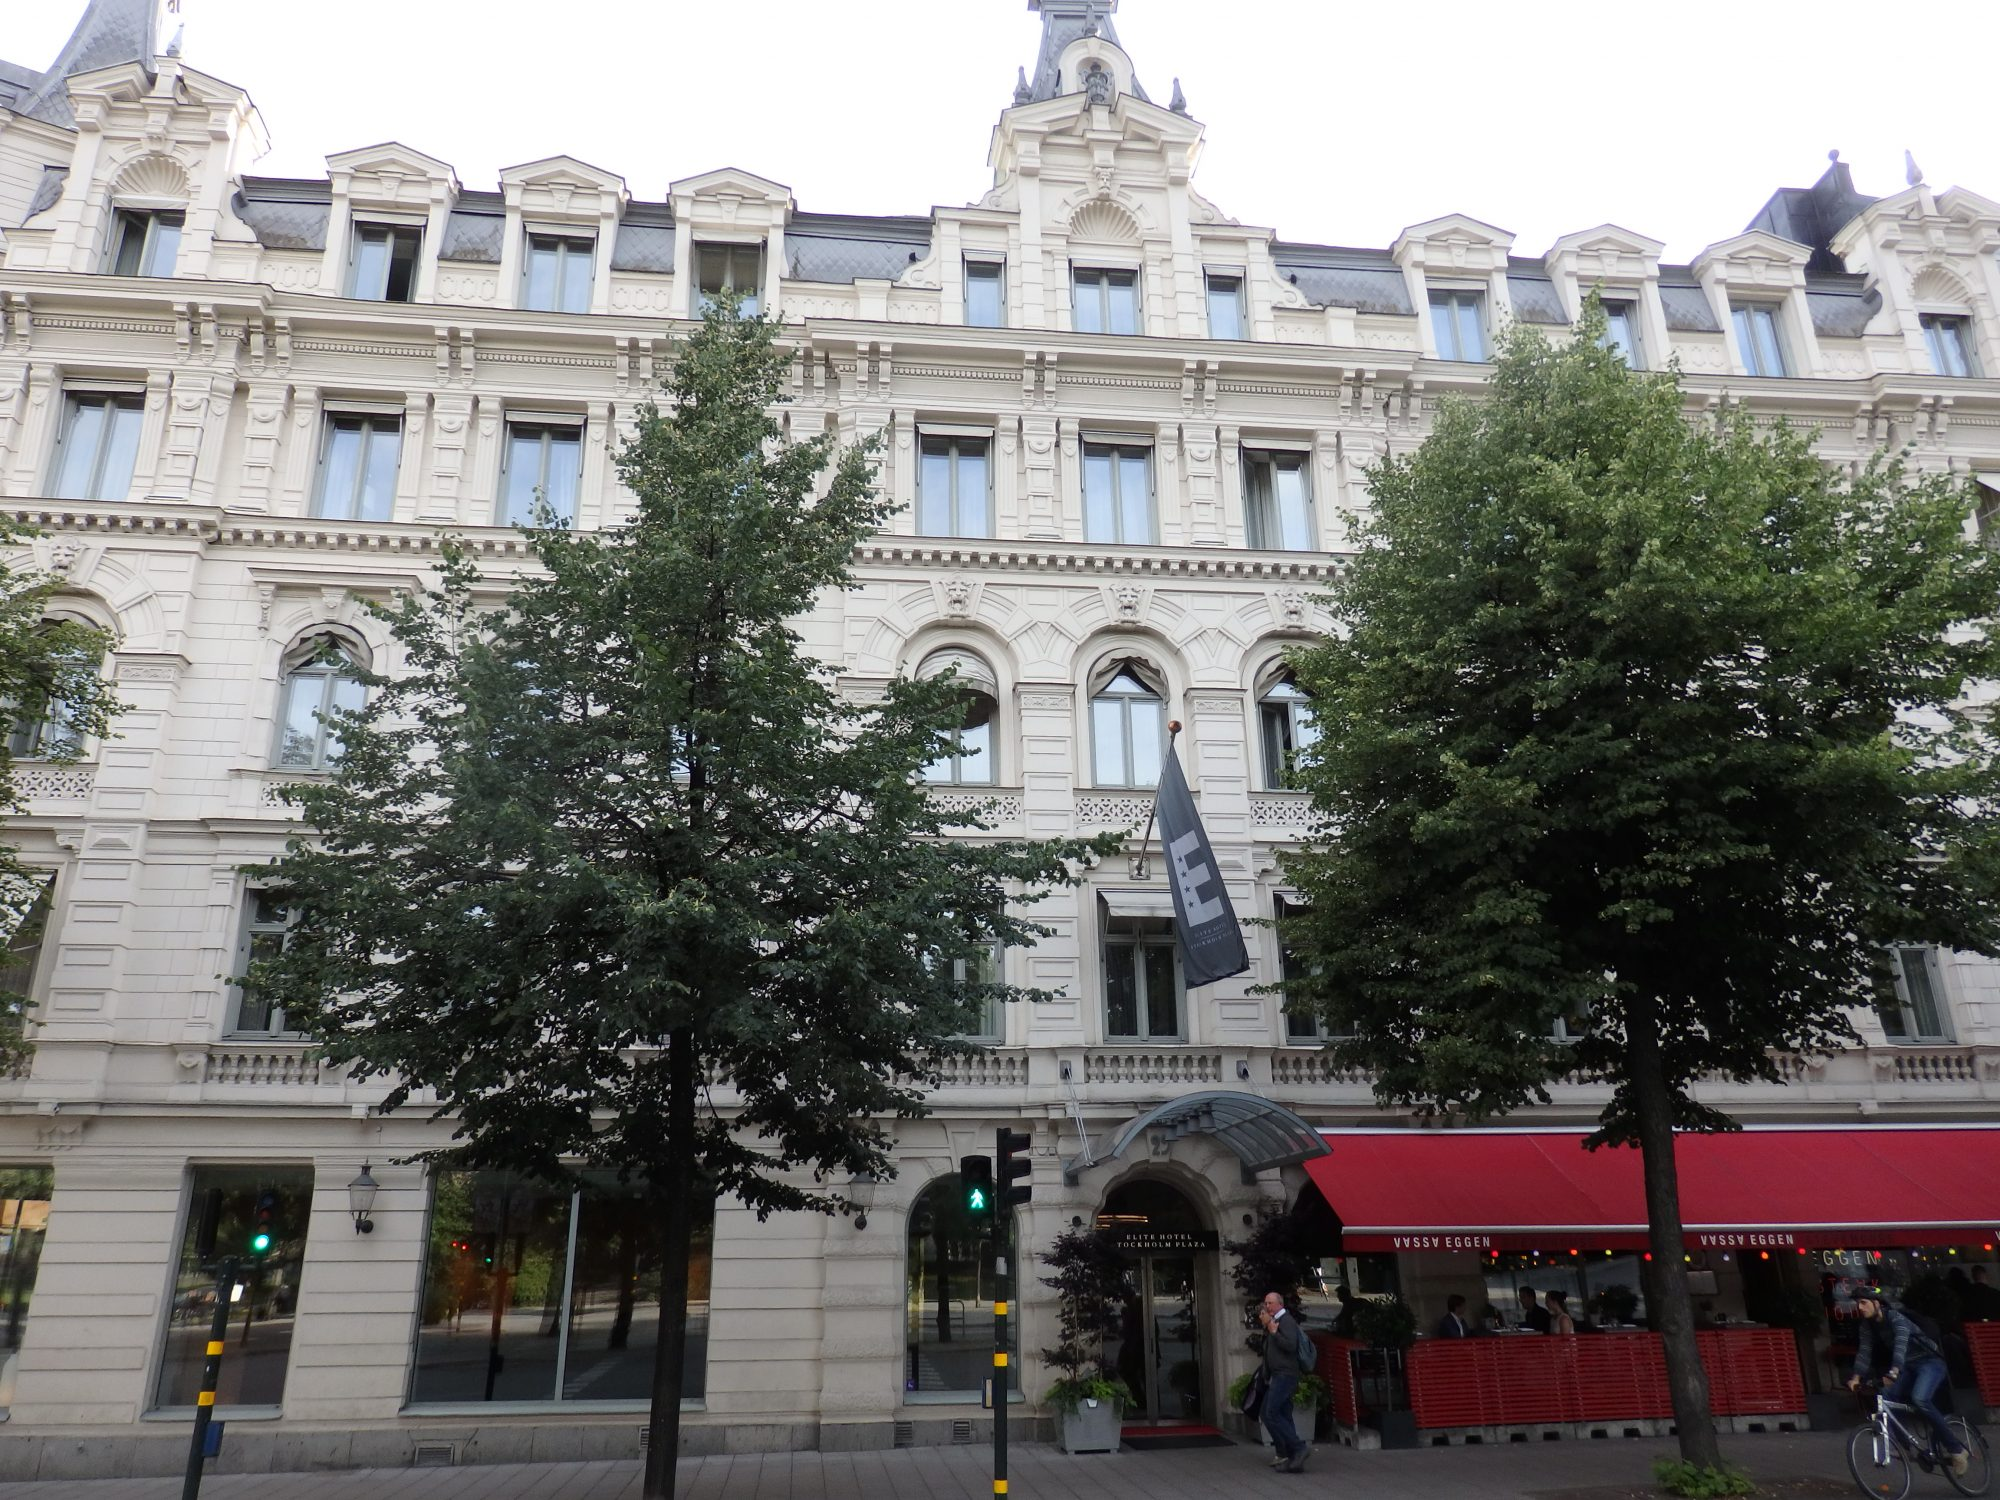 Elite Hotel Stockholm Plaza, booked through Hotwire